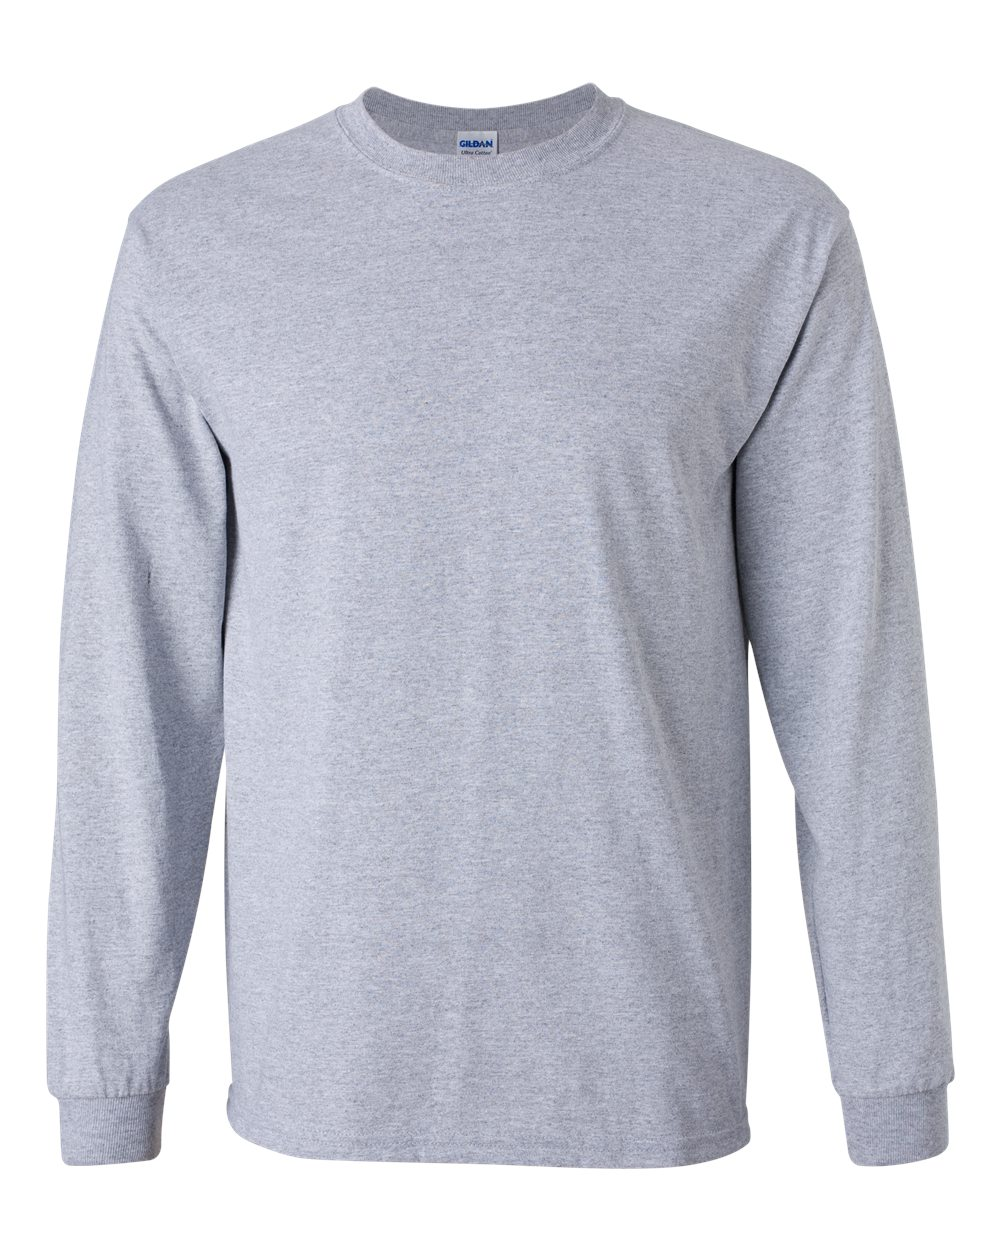 Dubuque Independent Football League - Product  Adult 100% Cotton Long  Sleeve T-Shirt (Grey) 66723c431cd